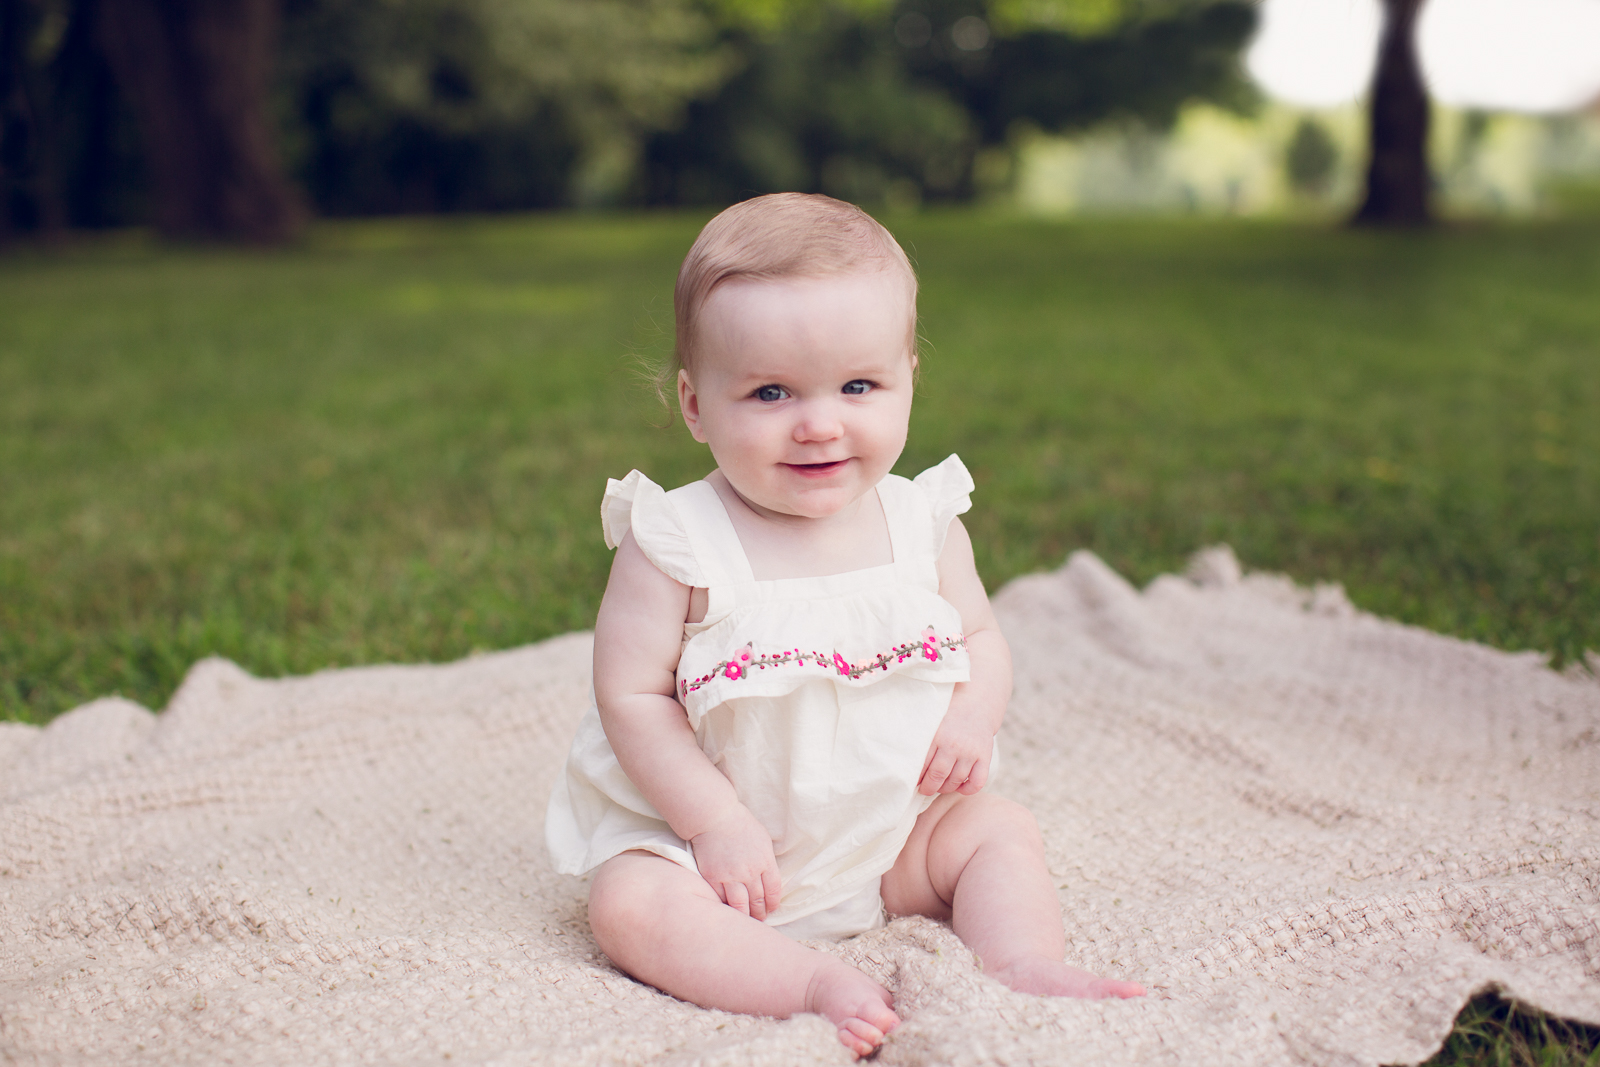 Hattie 6 month photographer lafayette indiana milestone photographer-13.jpg